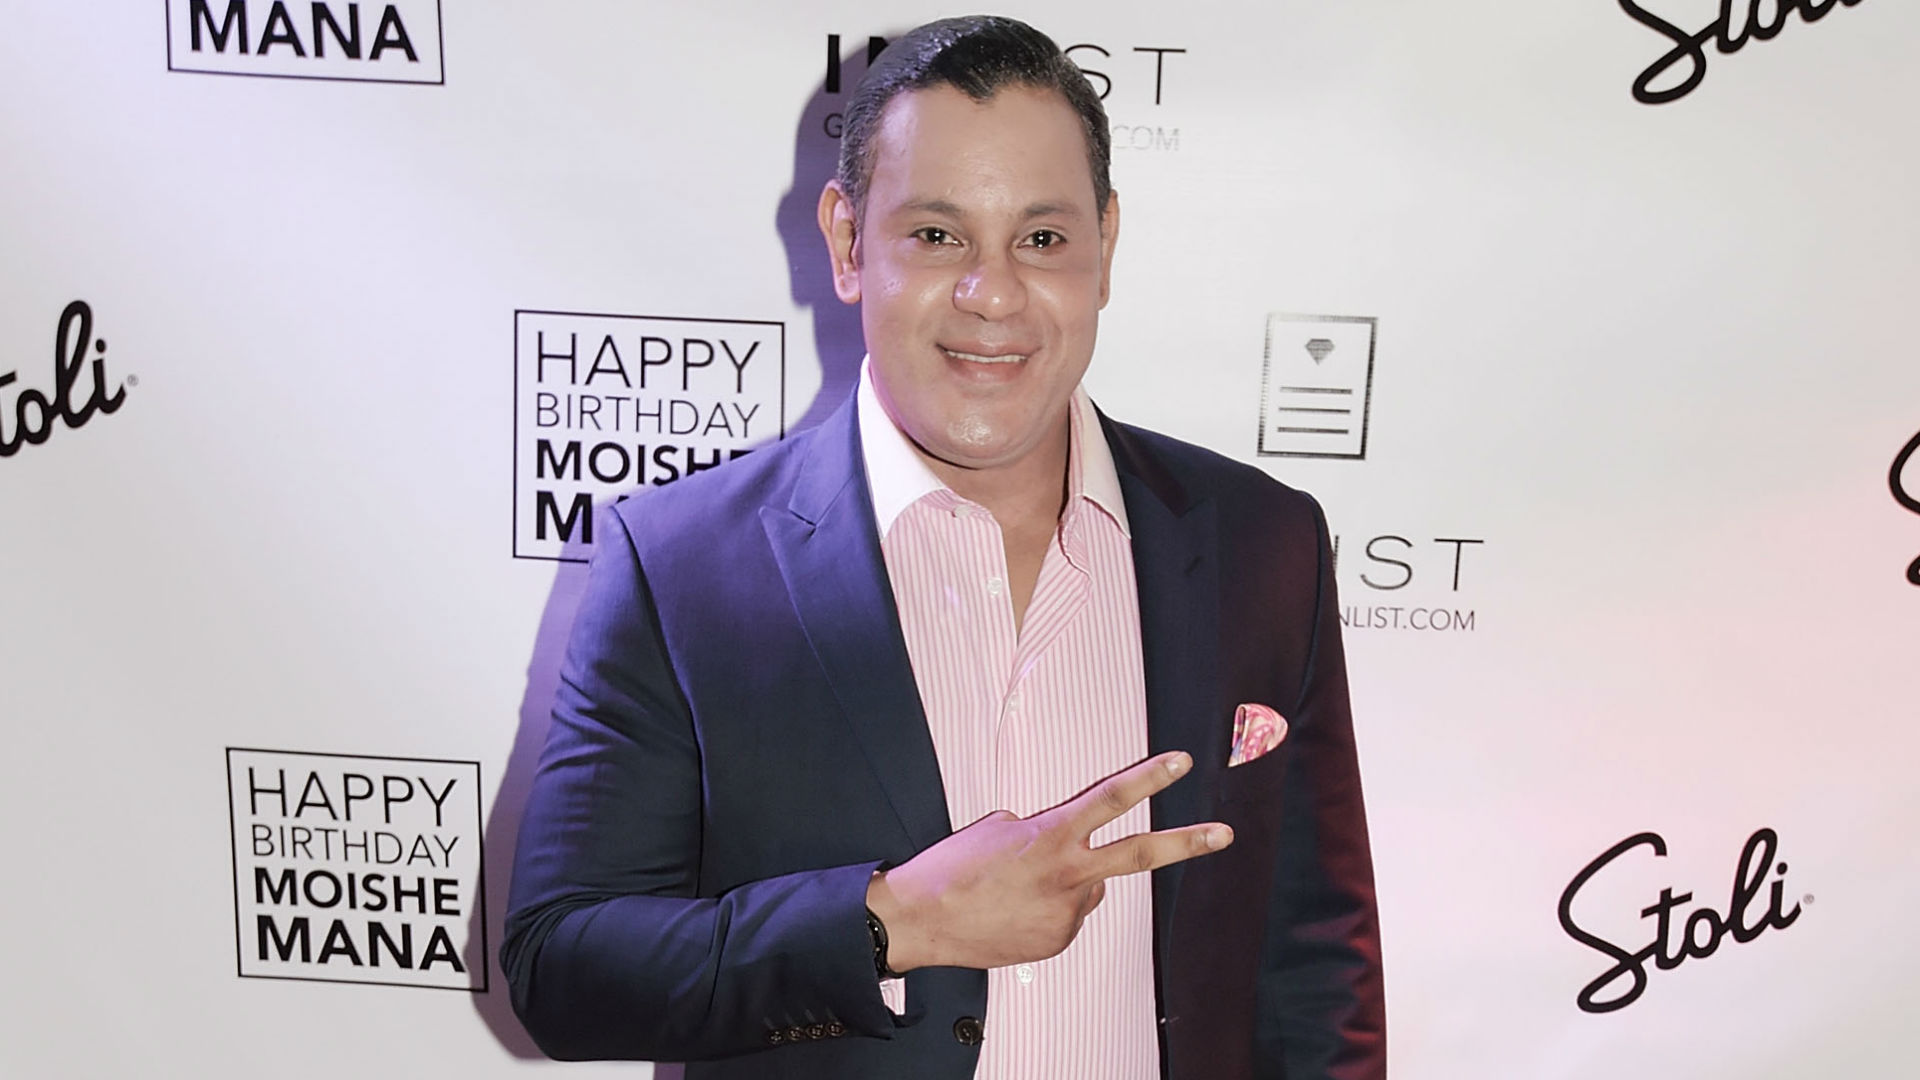 Sammy Sosa's bleached skin, pink outfit have Twitter cracking wise